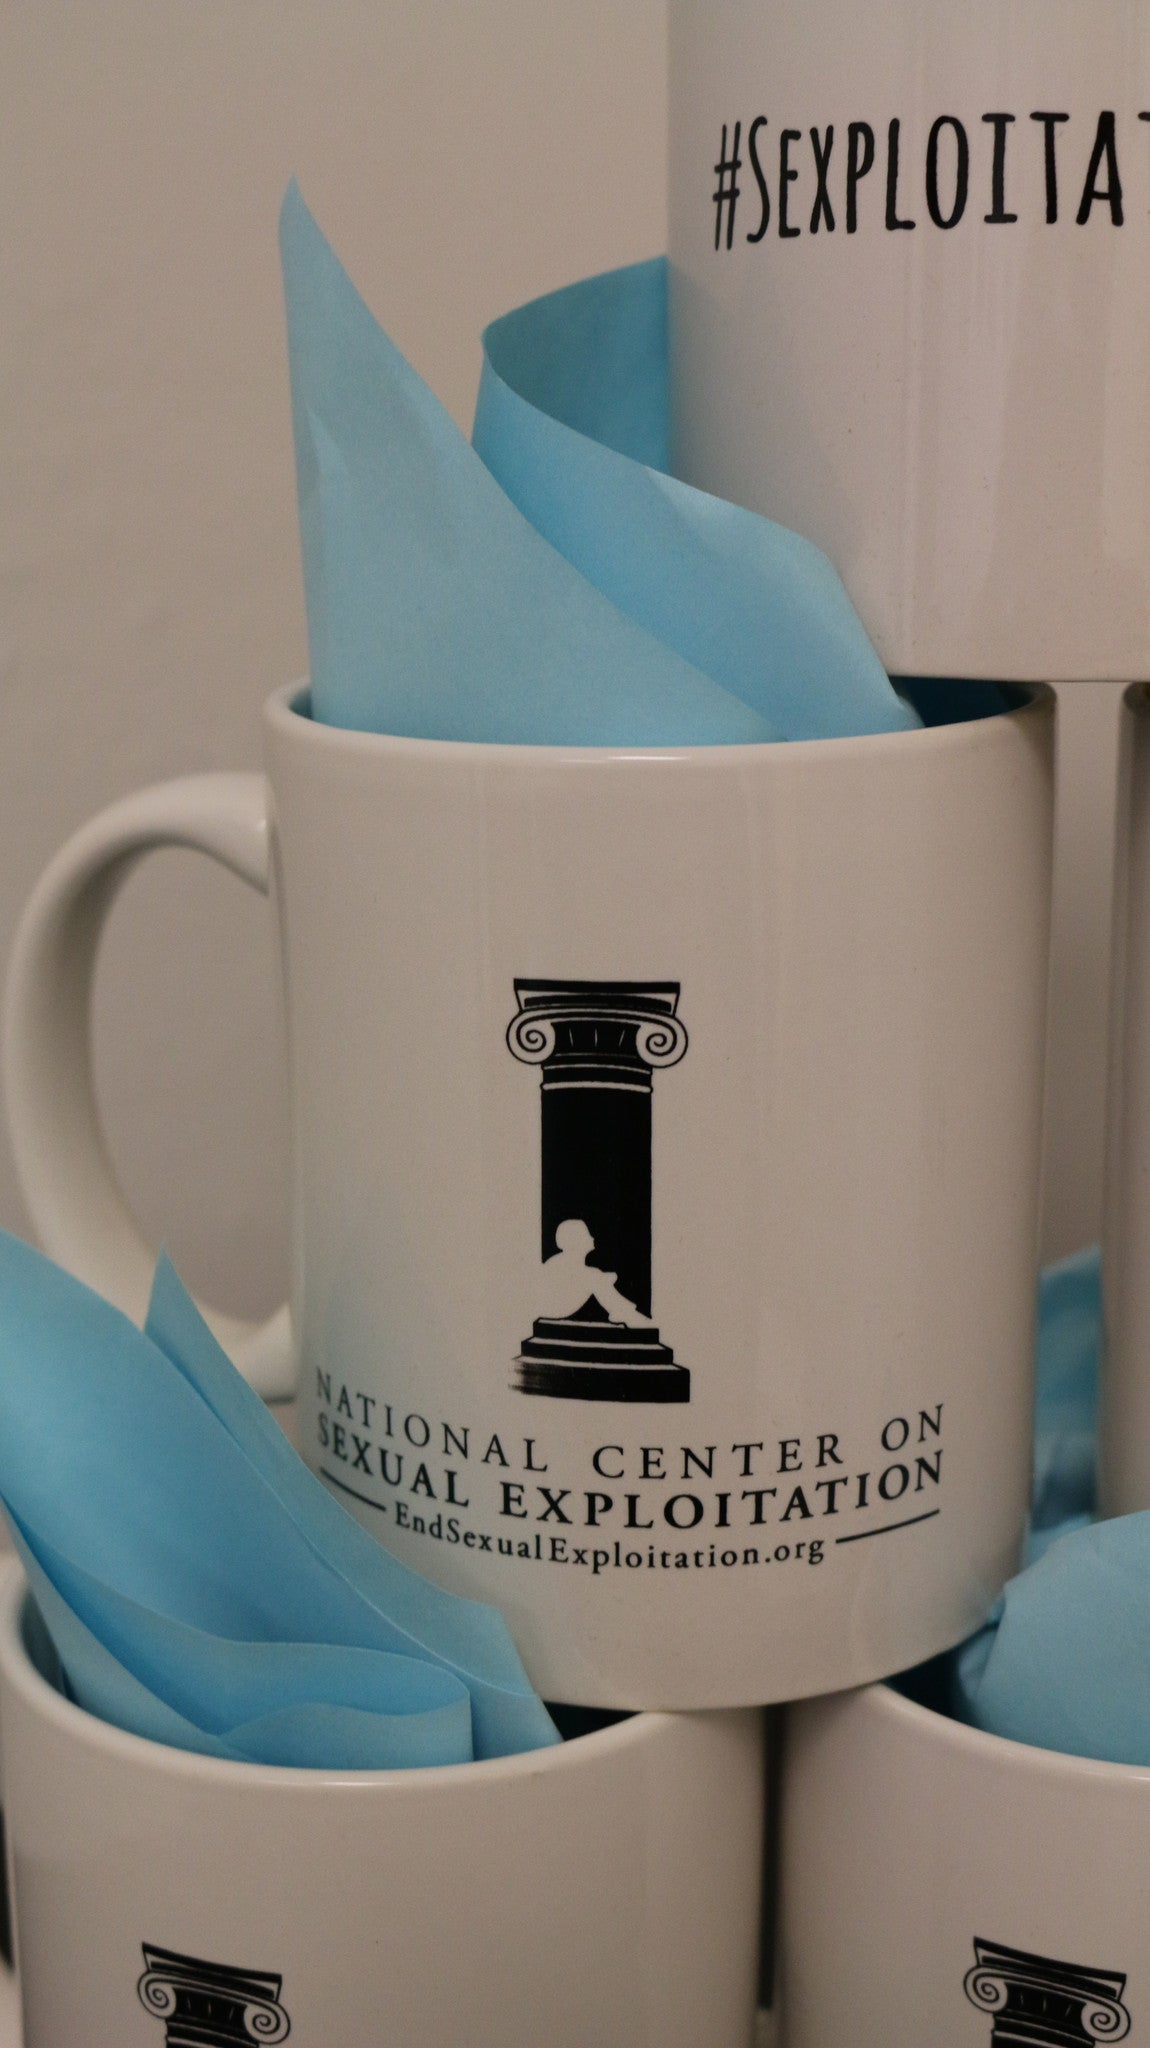 #SexploitationFree Mug